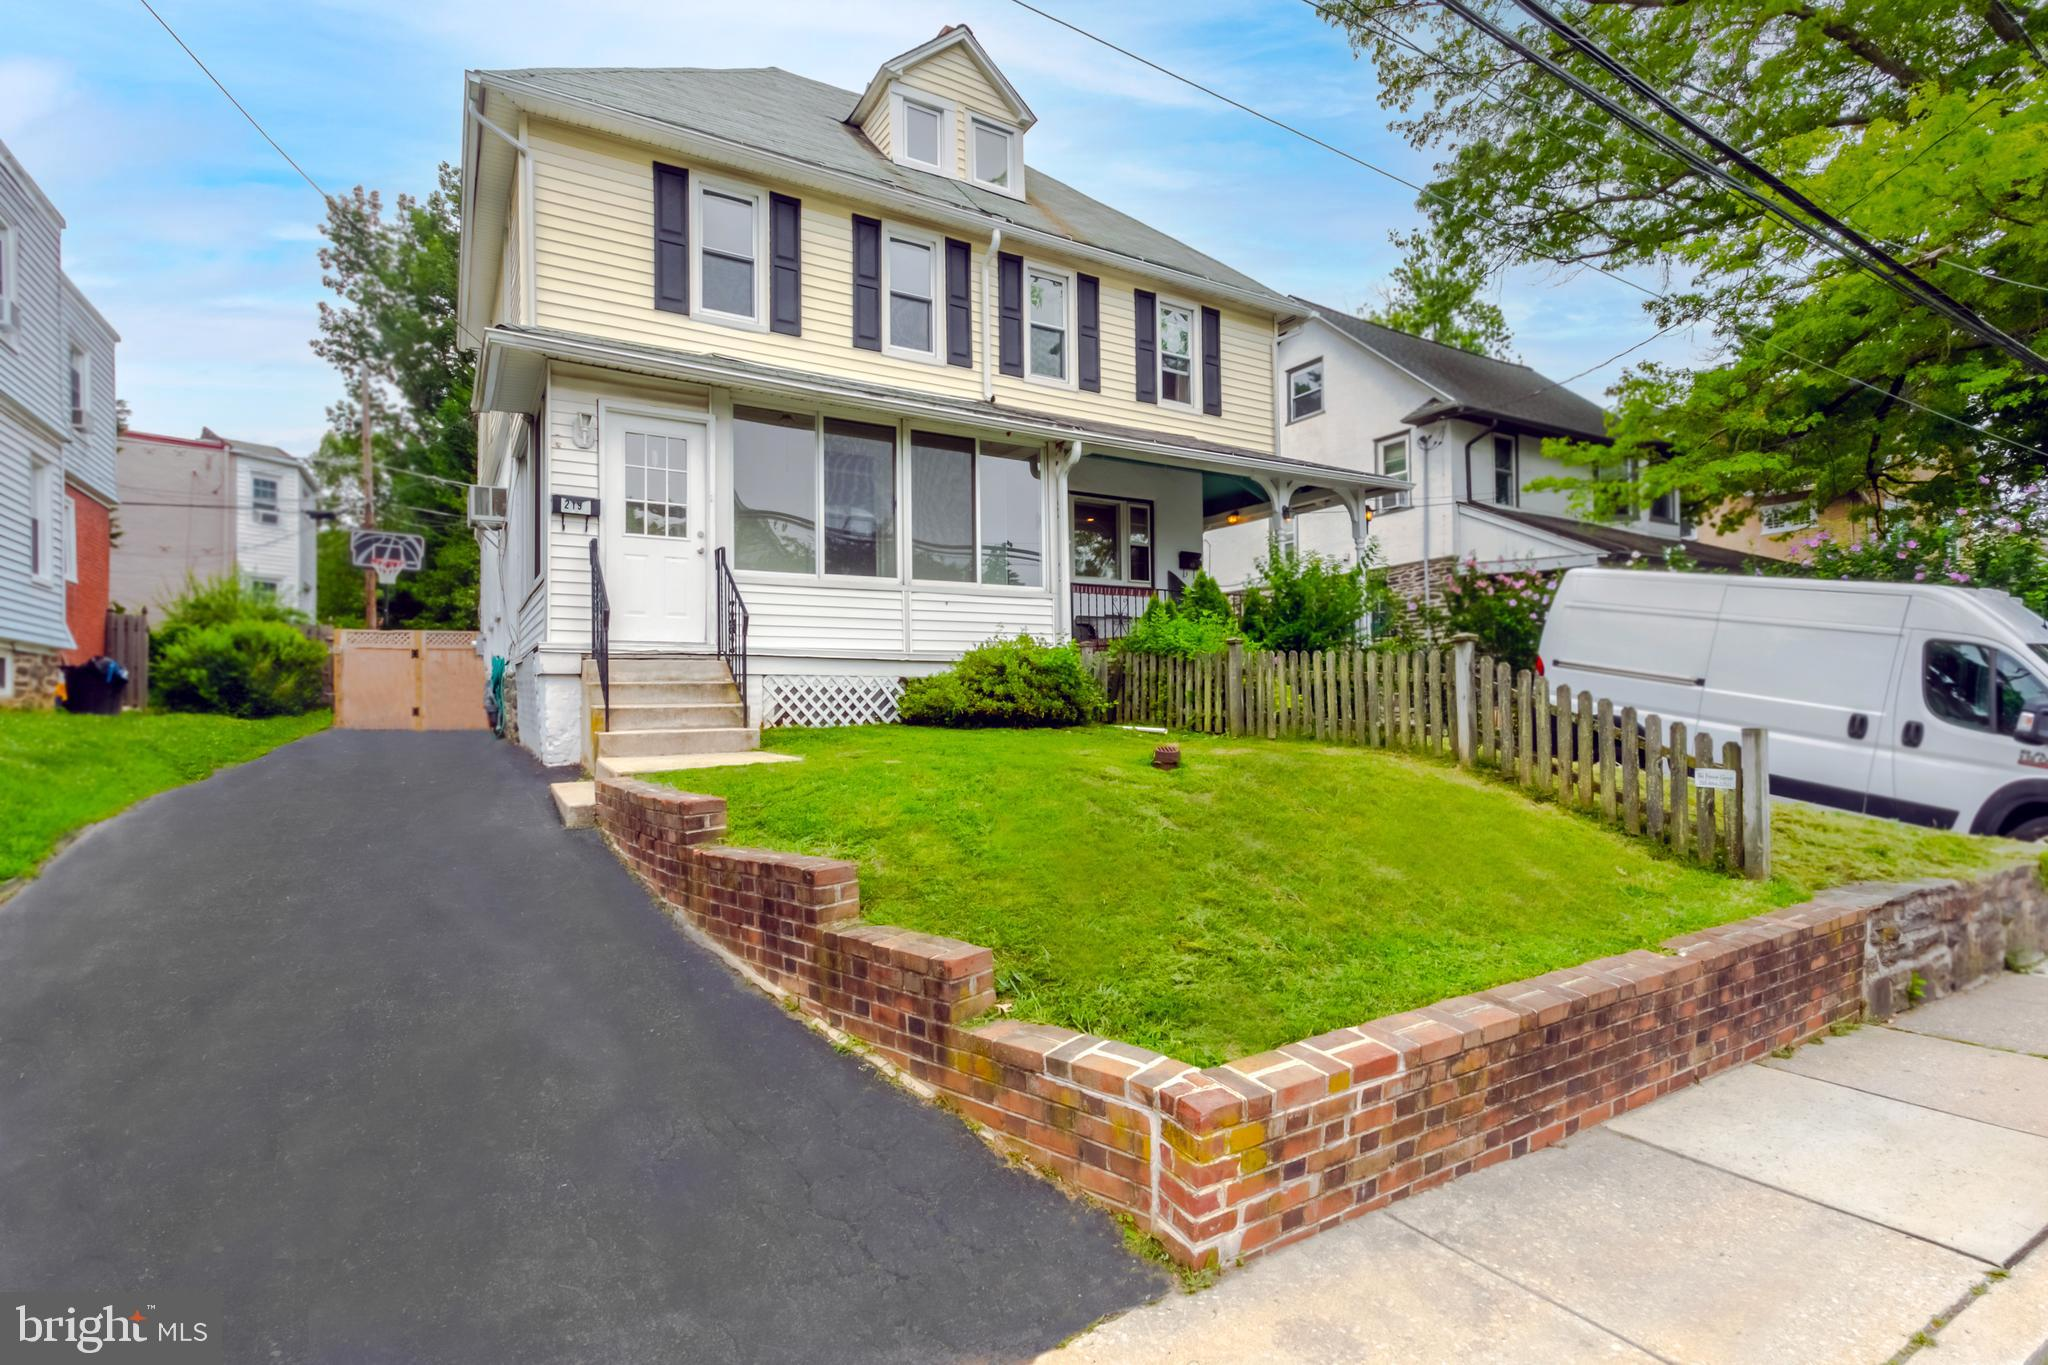 """Location, Location, Location!  Welcome to 219 Iona Avenue located in the heart of the coveted Narberth Borough and desirable Lower Merion School District!  This charming twin home is just a short walk to everything you need!  Pull into the private driveway and enter the home through a sun-filled enclosed porch.  The home's first floor boasts an open flow extending from the living room directly into the dining area and kitchen.  Directly off the kitchen is a brand new """"Trex"""" deck - perfect for everyday living or entertaining.  The current owners also just installed a brand new, beautiful outdoor shed in the private and fully fenced backyard.  The partially finished basement includes a home office,  seating area,  powder room, and laundry and utility area.  The second floor of the home features a sizable primary bedroom, with two additional bedrooms and a full bathroom.  The third floor includes a """"bonus"""" bedroom which could also be used as a home office or playroom.  Beautiful hardwood floors flow throughout the home.  This home and the ultra-convenient location offer all the benefits of Narberth including a short walk to the R5 train line to Center City Philadelphia, a wide variety of shops and restaurants, a library,  playgrounds, and much more!  Schedule your showing today!   Showings begin Friday, July 16th."""